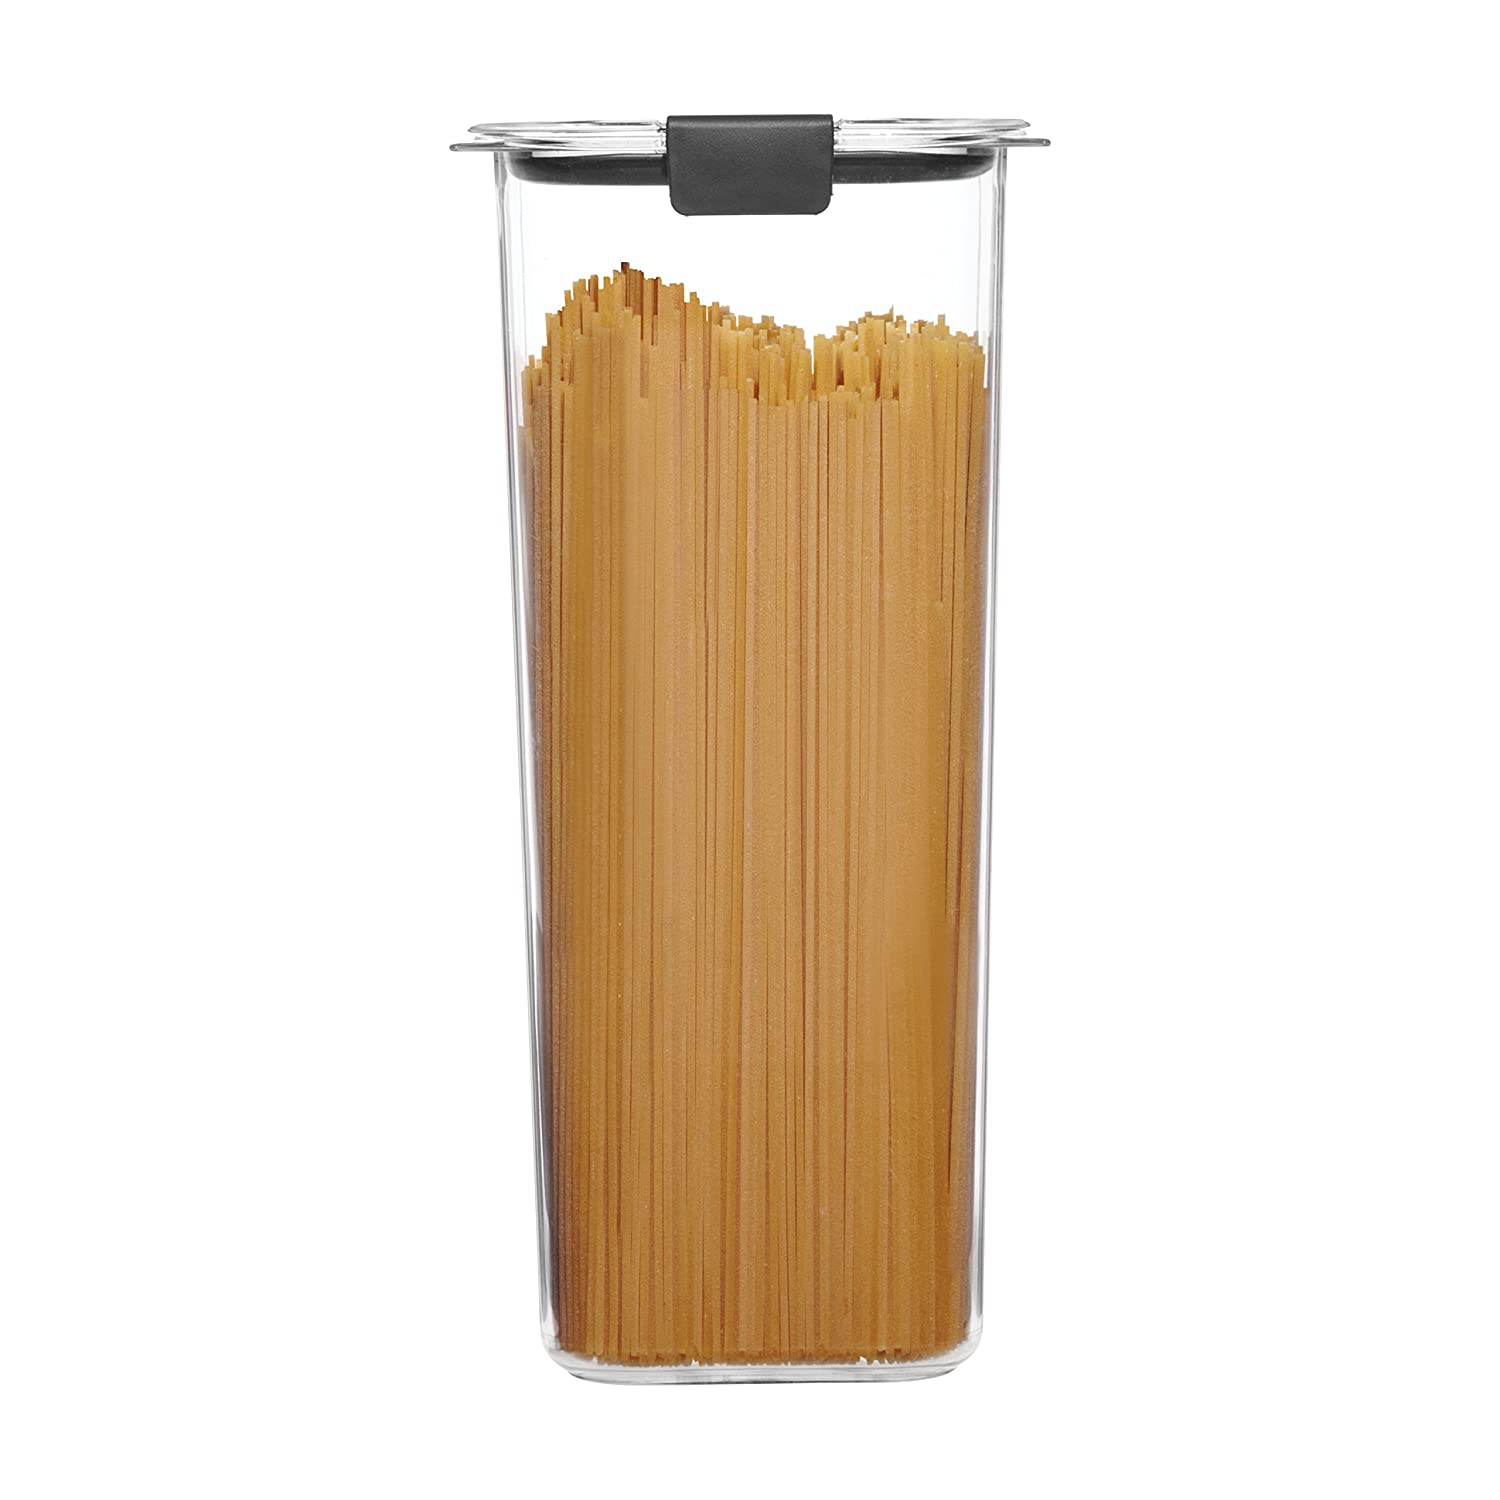 Rubbermaid 1994226 Container, BPA-Free Plastic, Brilliance Pantry Airtight Food Storage, Open Stock, Spaghetti (8.1 Cup)